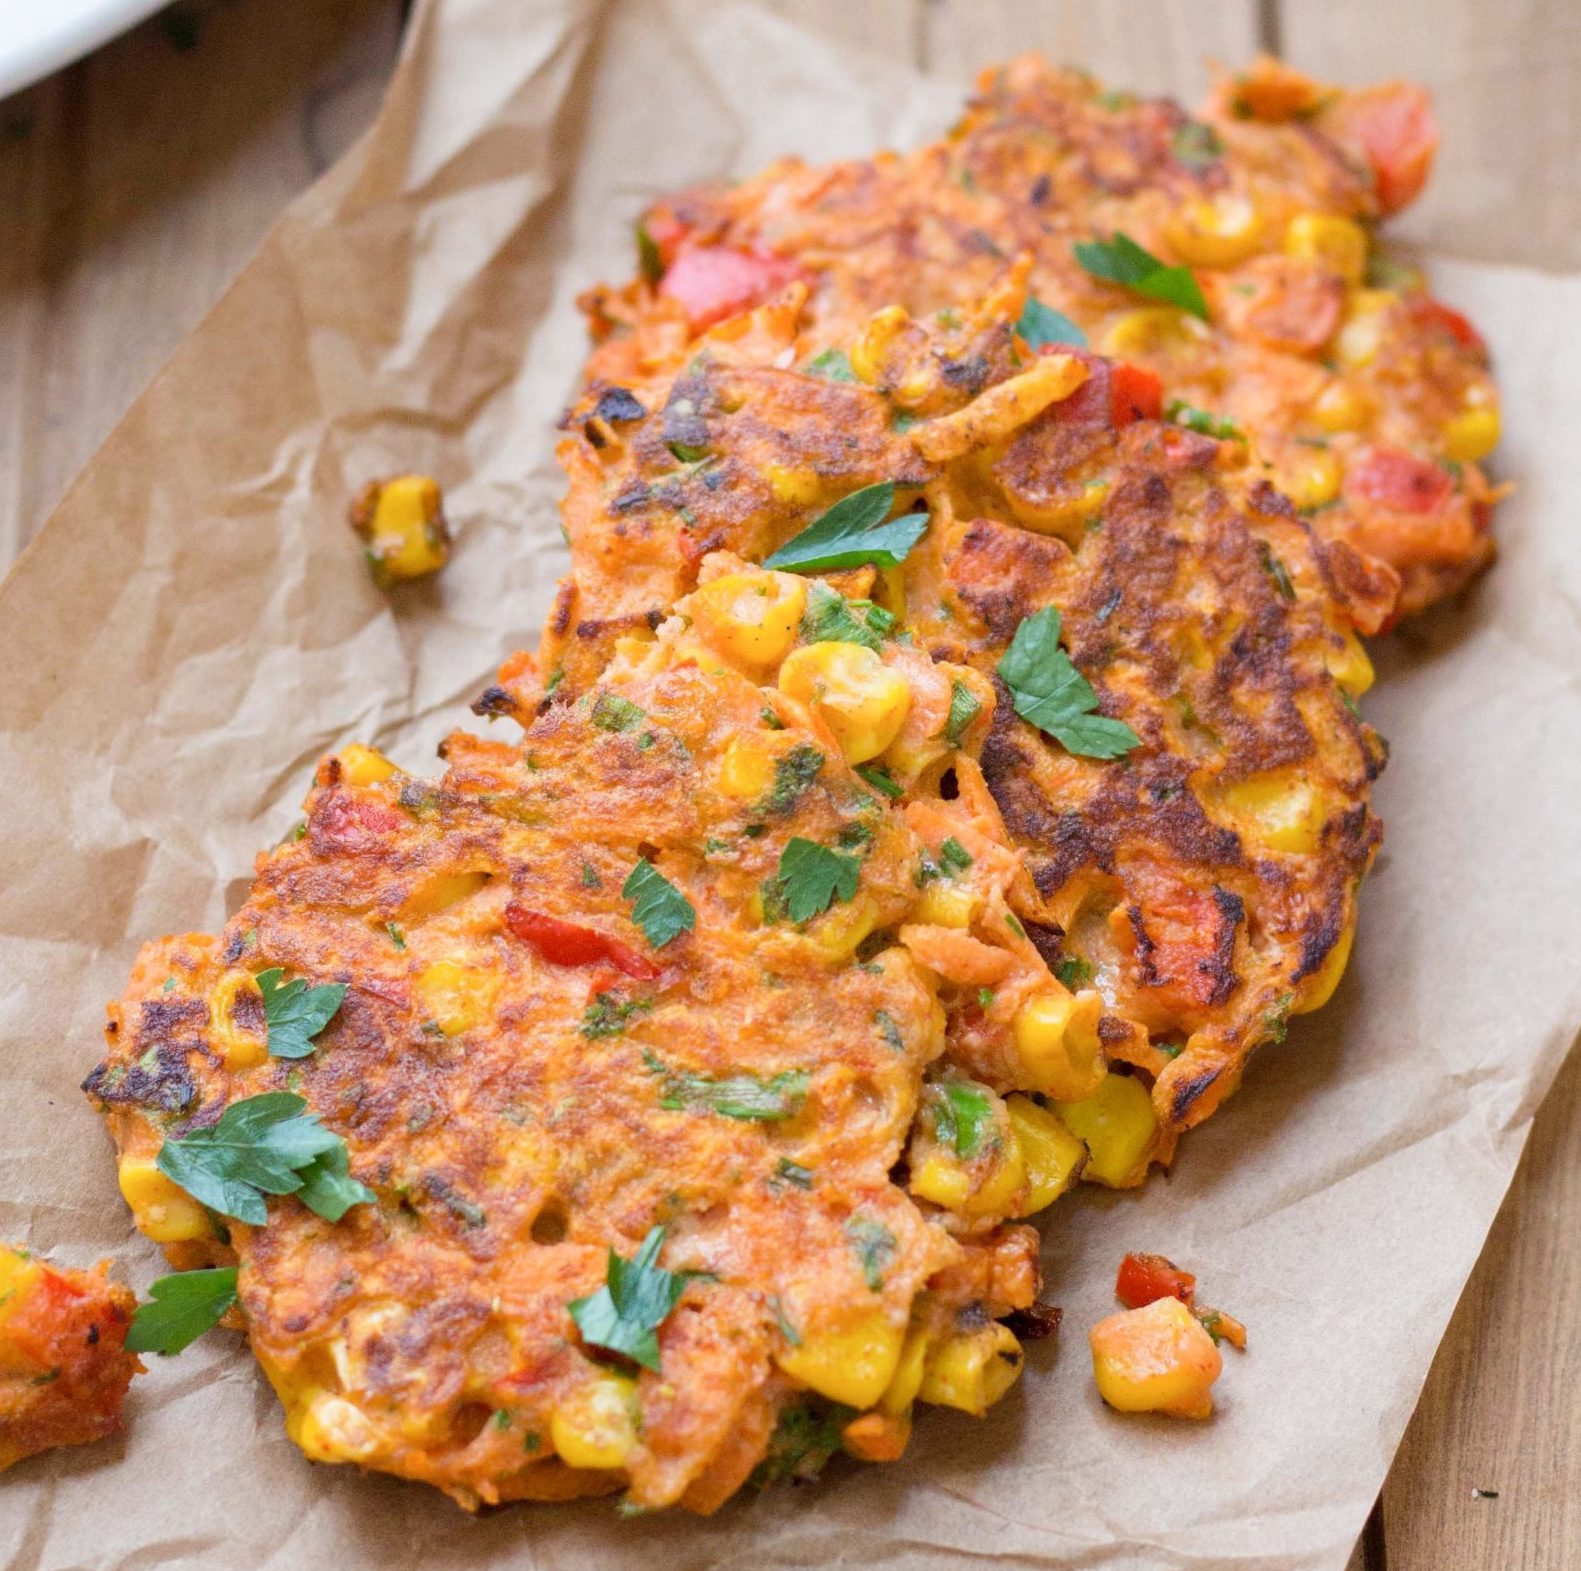 Low-FODMAP-Carrot-And-Corn-Fritters